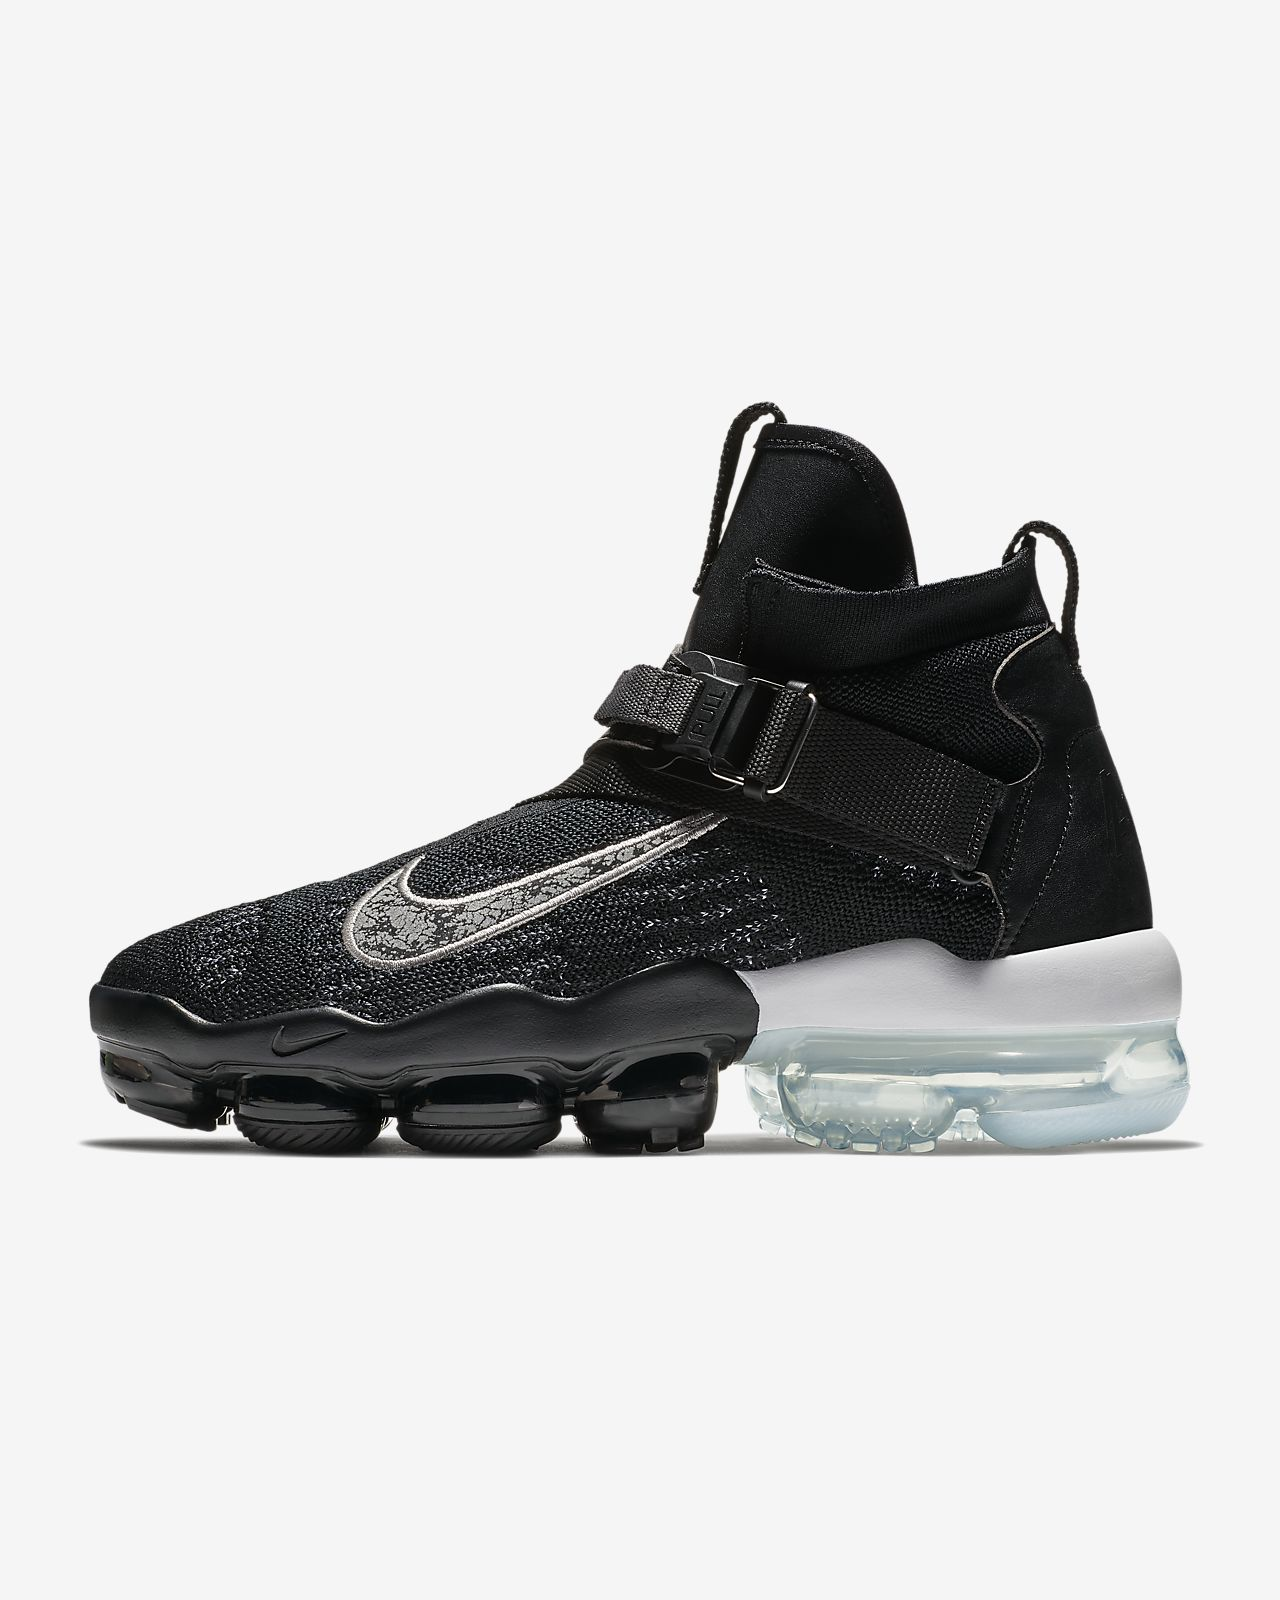 new arrival 11af7 adac0 Men s Shoe. Nike Air VaporMax Premier Flyknit